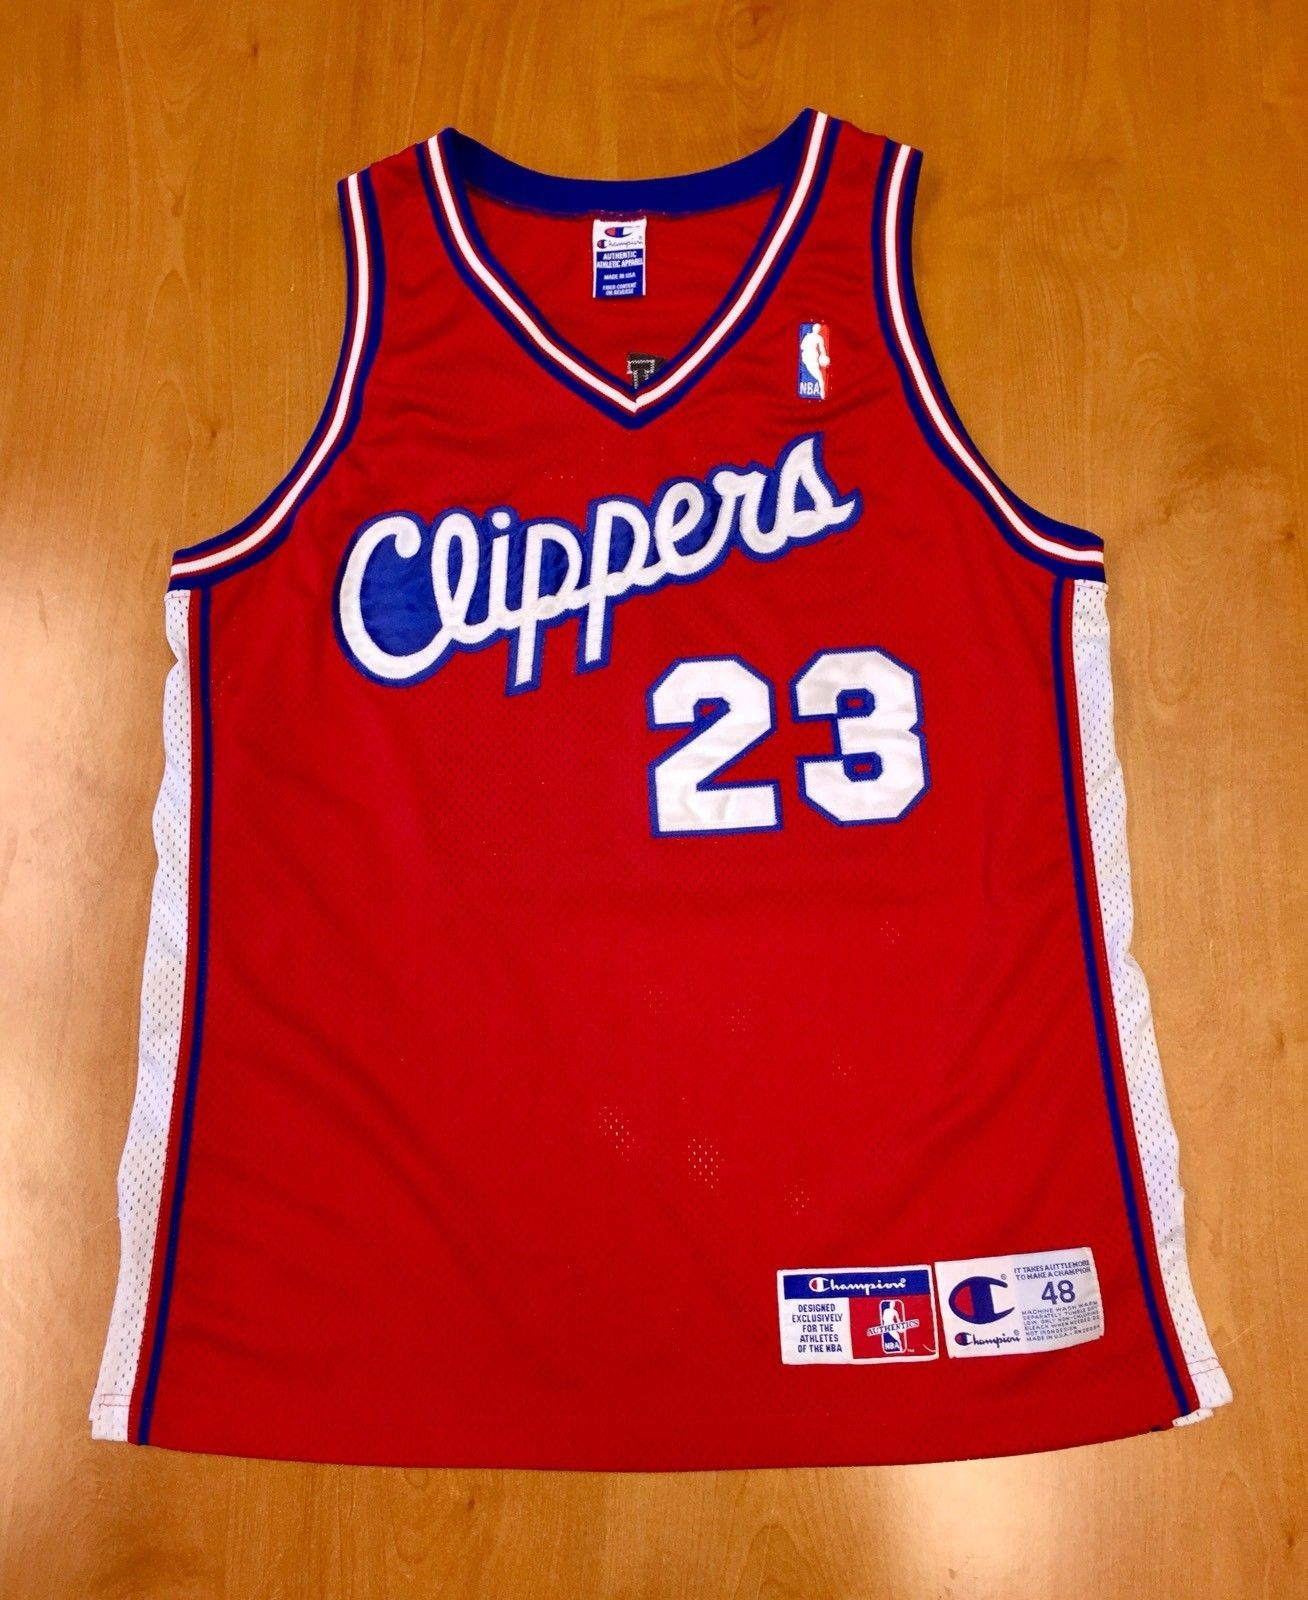 c4d6b939605741 Vintage 1997 Maurice Taylor Los Angeles Clippers Authentic Champion Jersey  Size 48 la michigan pooh quentin richardson michael olowankandi by ...